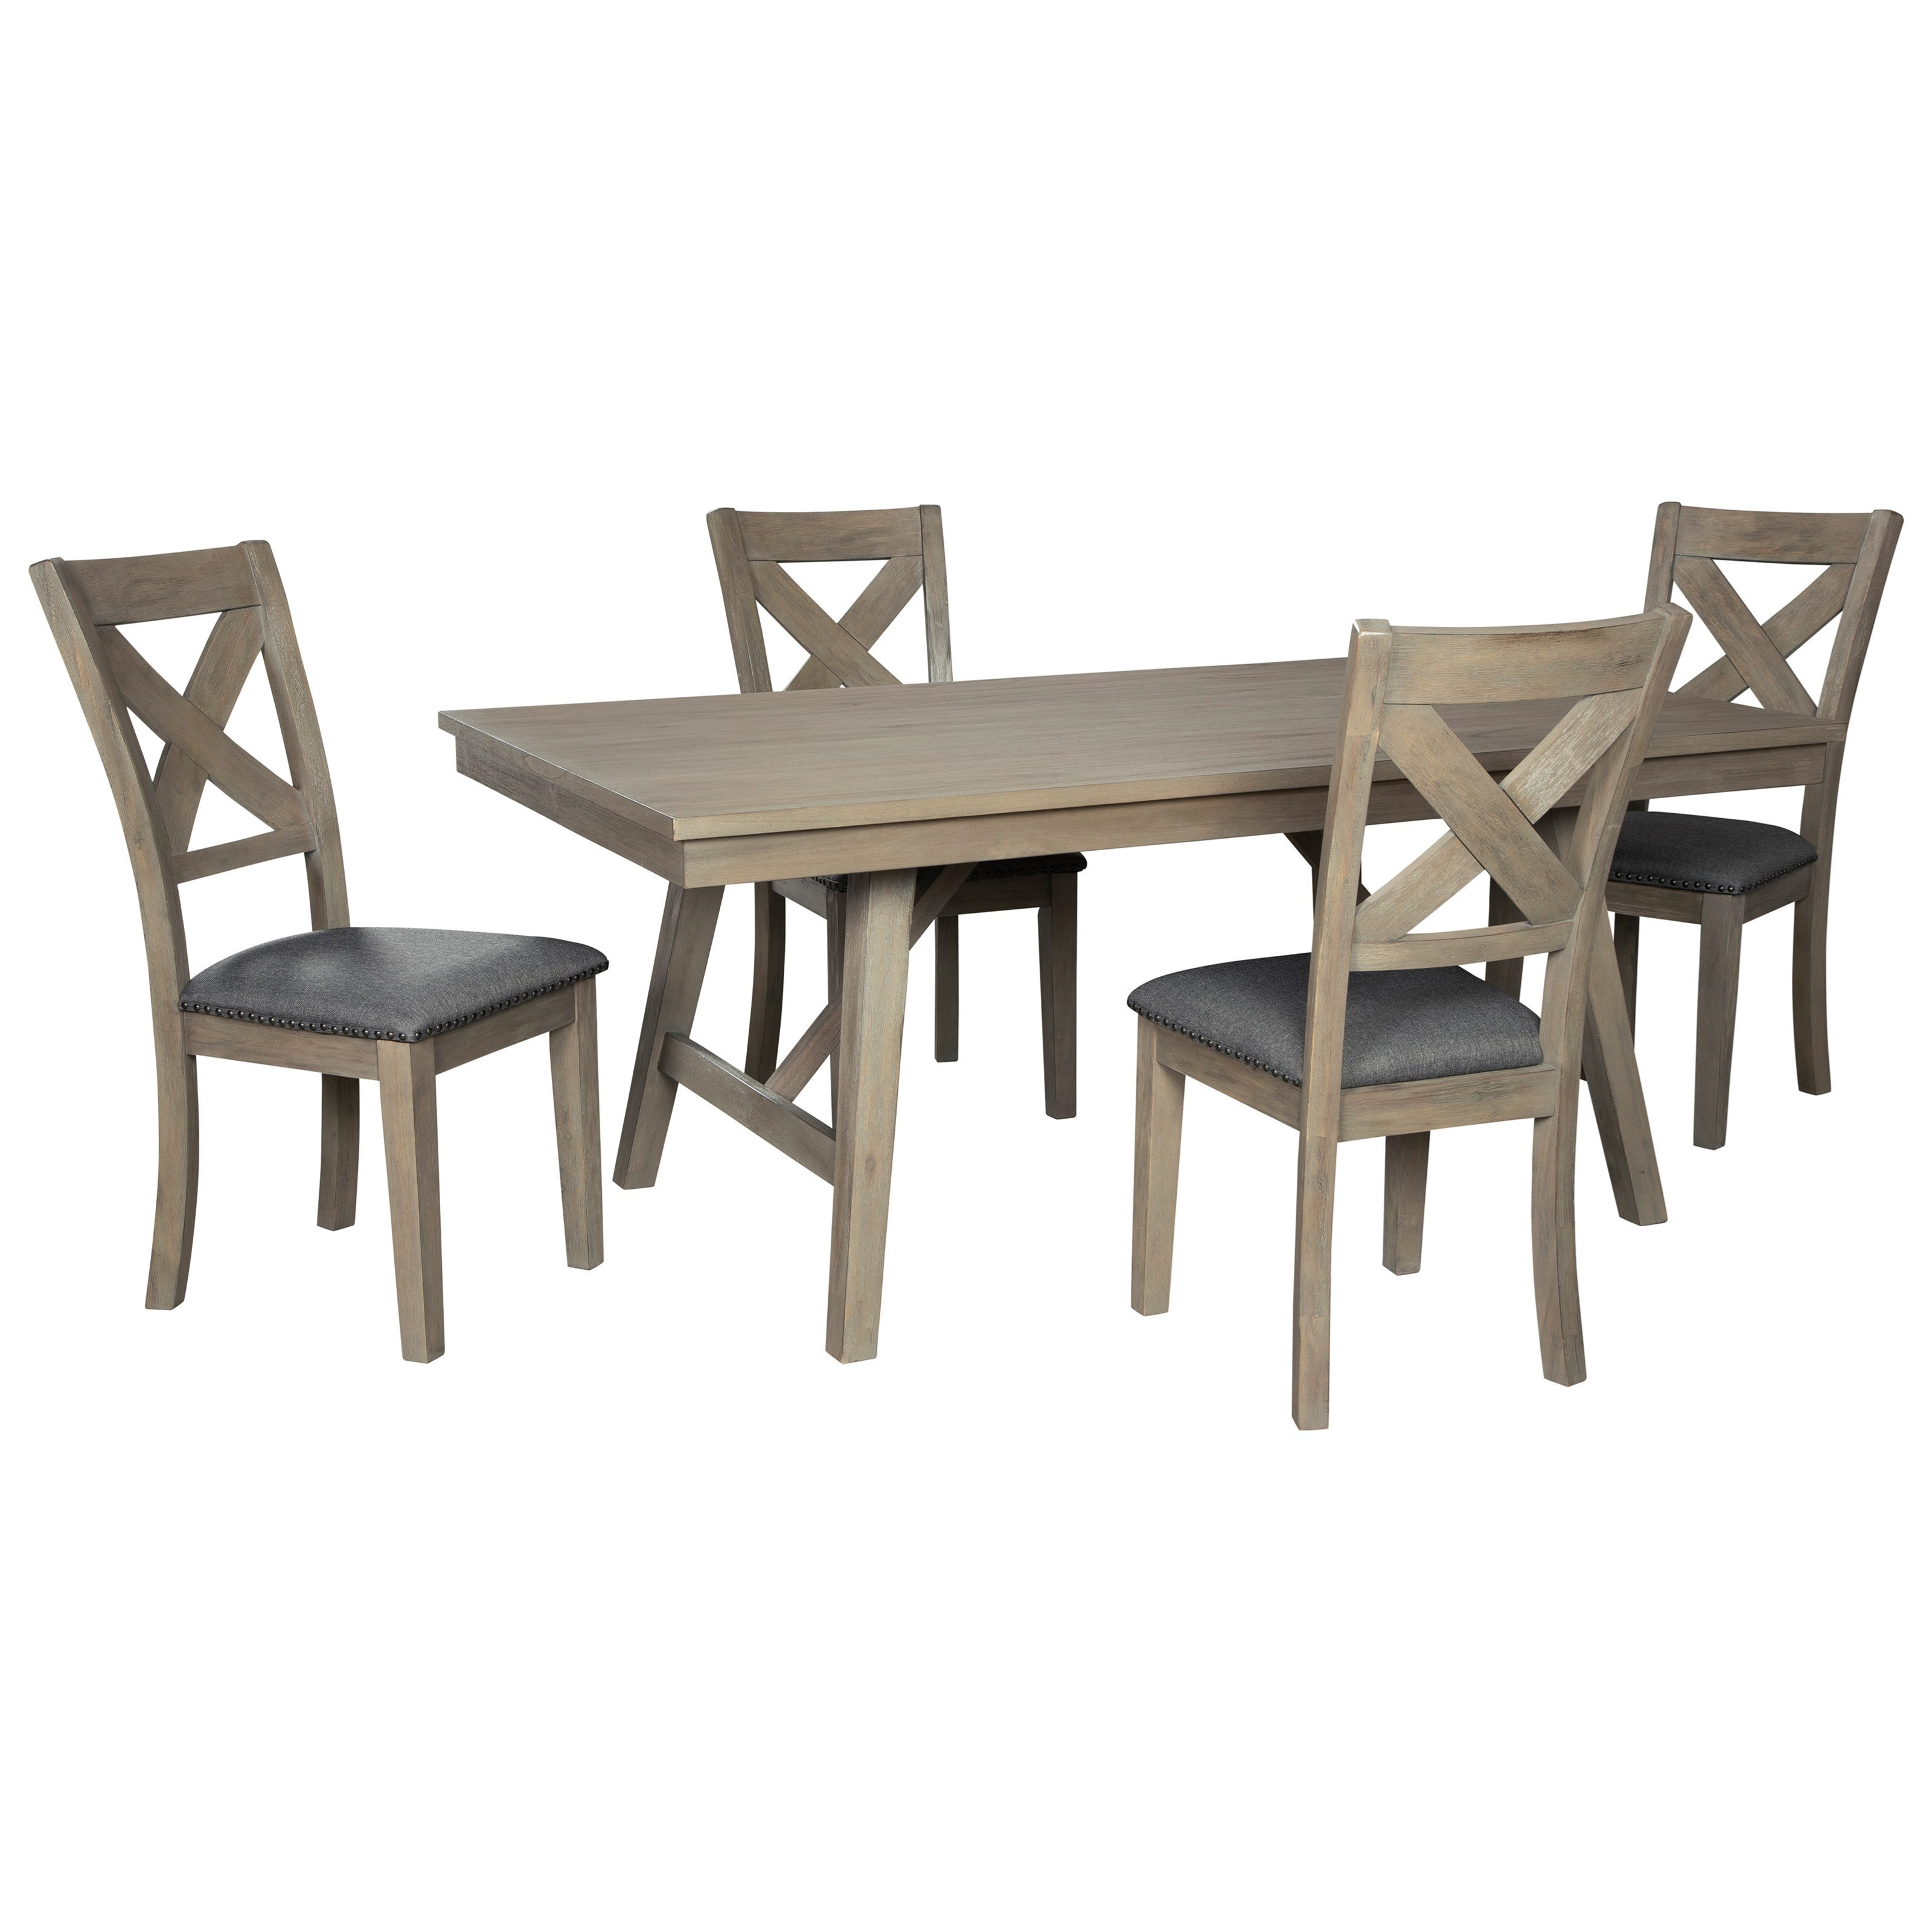 Aldwin 5-Piece Table and Chair Set by Signature Design by Ashley at Value City Furniture